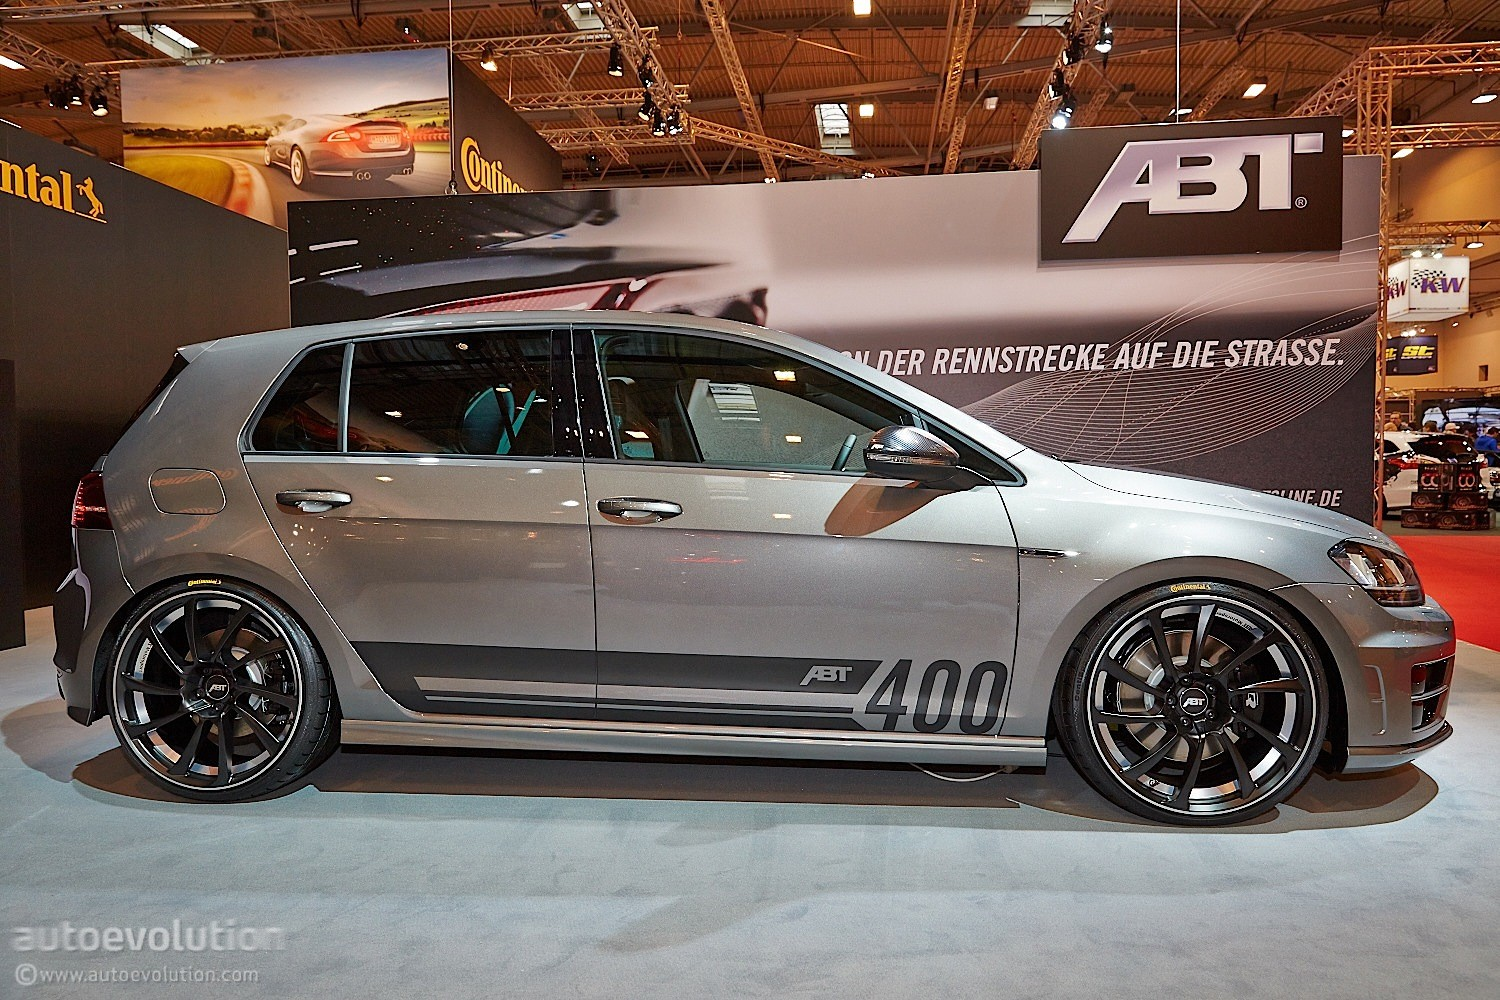 golf r goes mental with 400 hp tuning kit from abt in essen live photos autoevolution. Black Bedroom Furniture Sets. Home Design Ideas